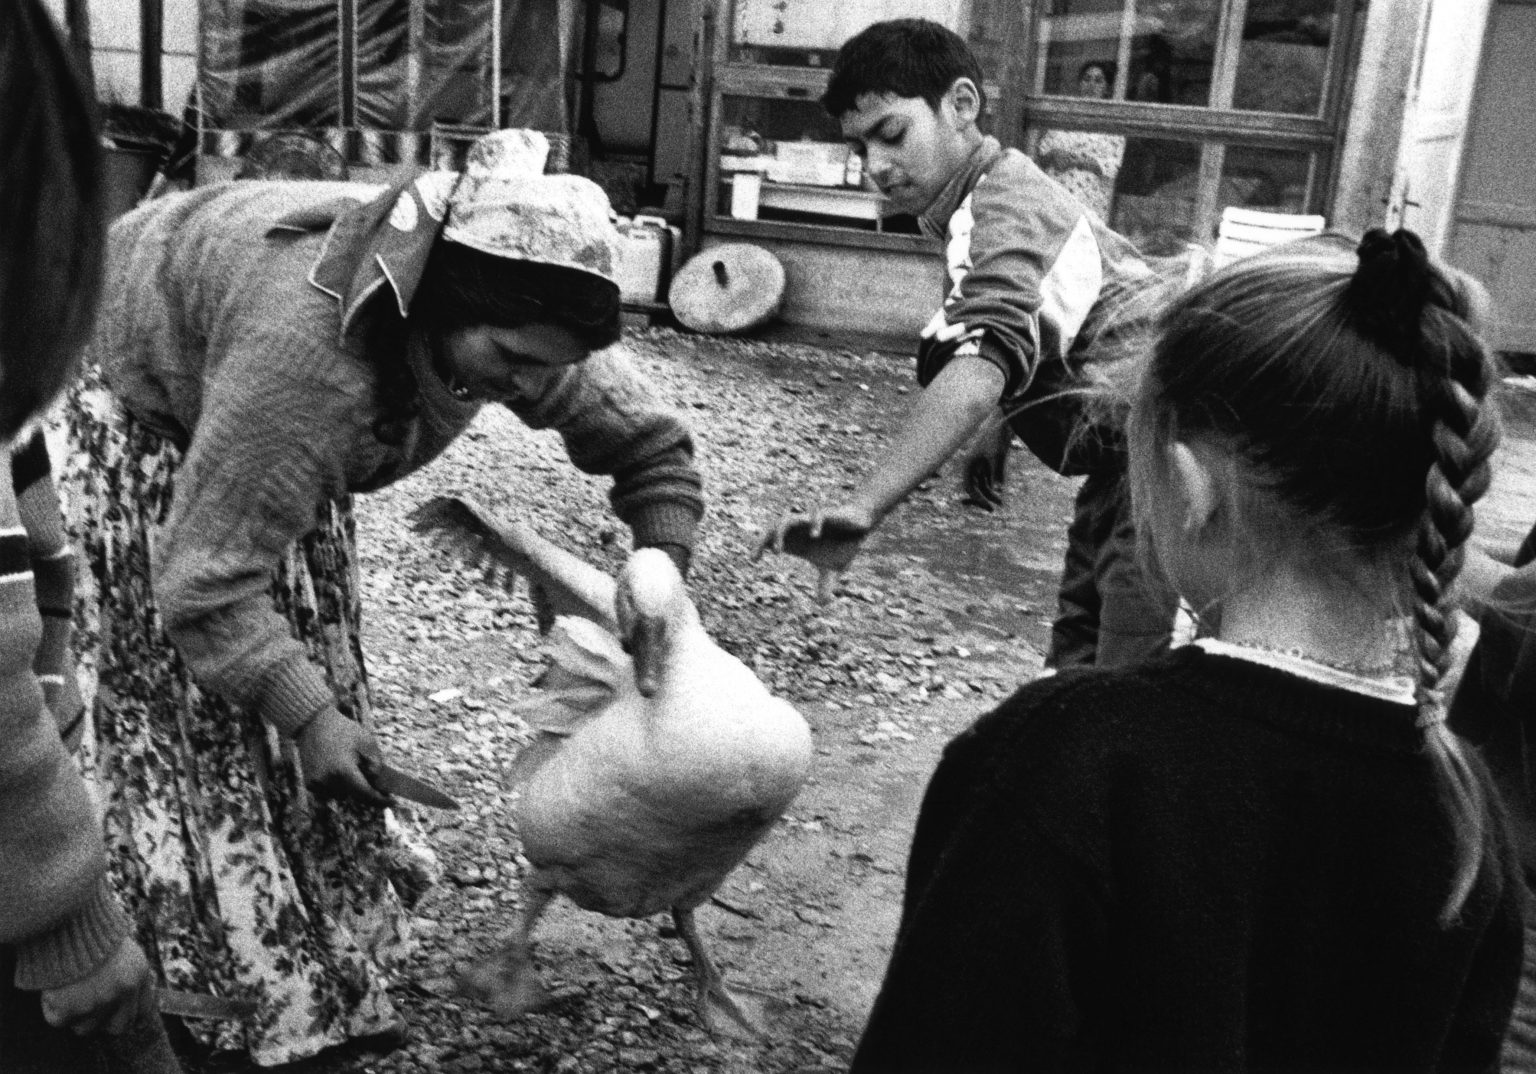 """Florence , 1993 - Nomads'camp -  the killing of a goose        ><  Firenze , 1993 - Campo nomadi - Uccisione di un' oca<p><span style=""""color: #ff0000""""><strong>*** SPECIAL   FEE   APPLIES ***</strong></span></p>"""